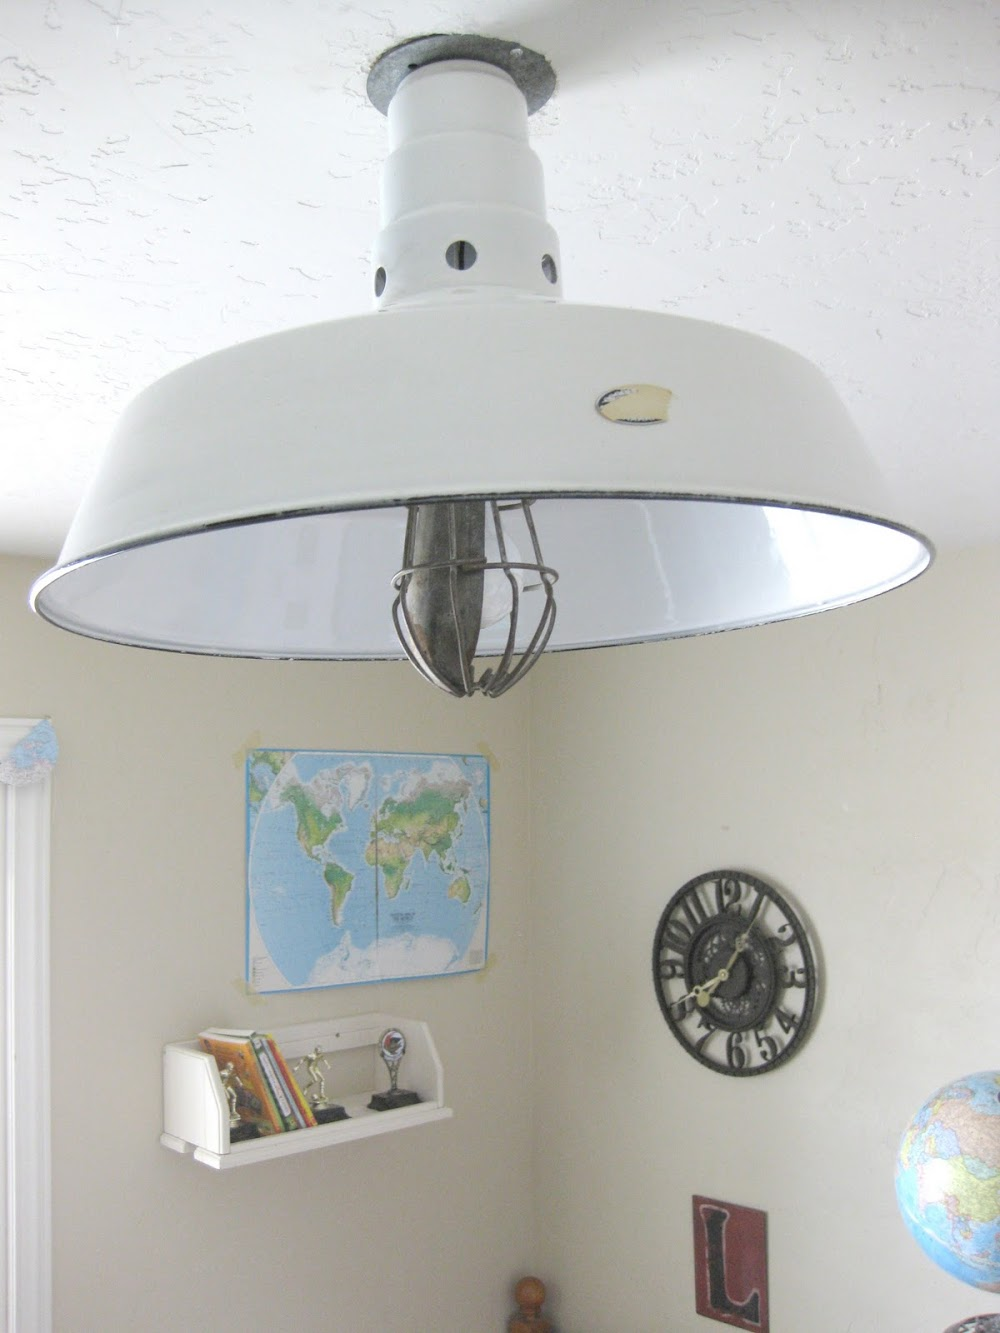 $6 industrial barn light {a great find} and a chance to win one similar